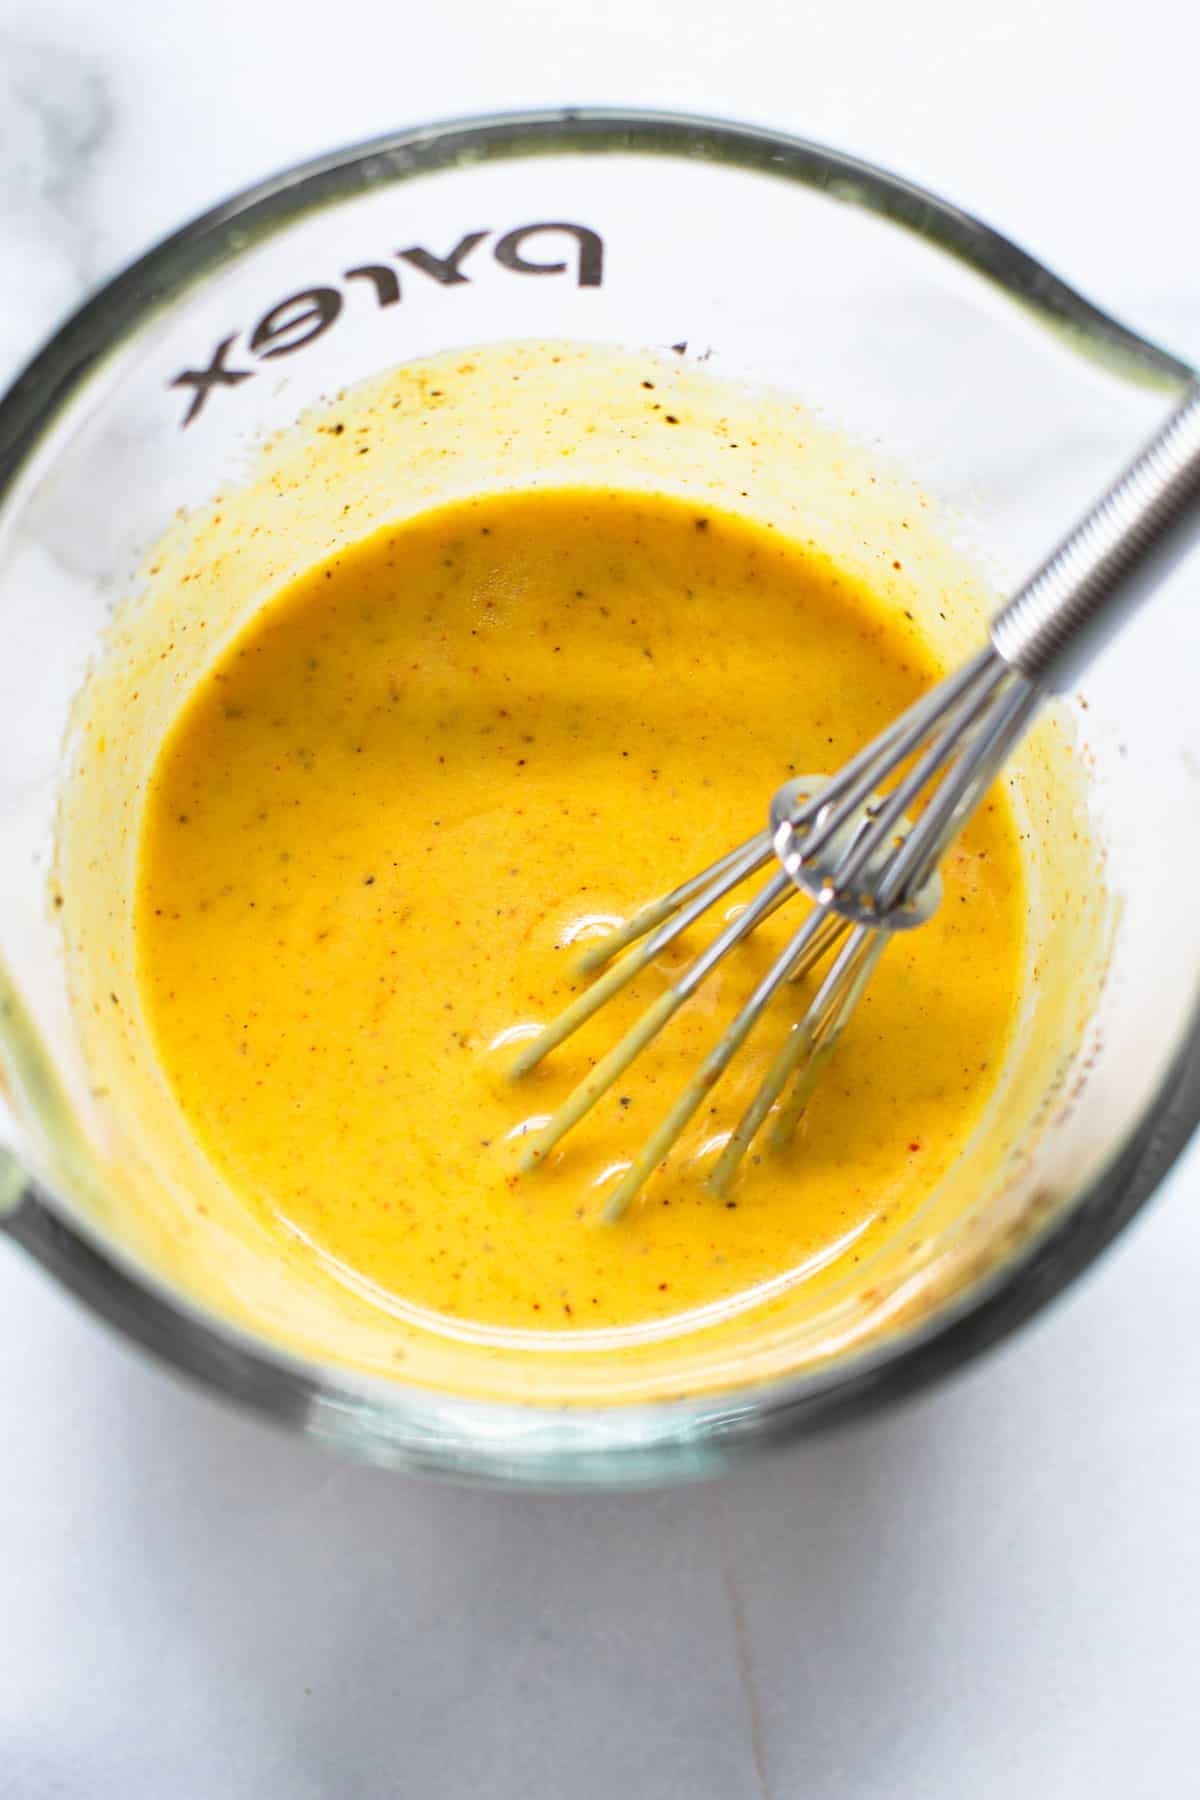 Mustard salad dressing in a glass container.